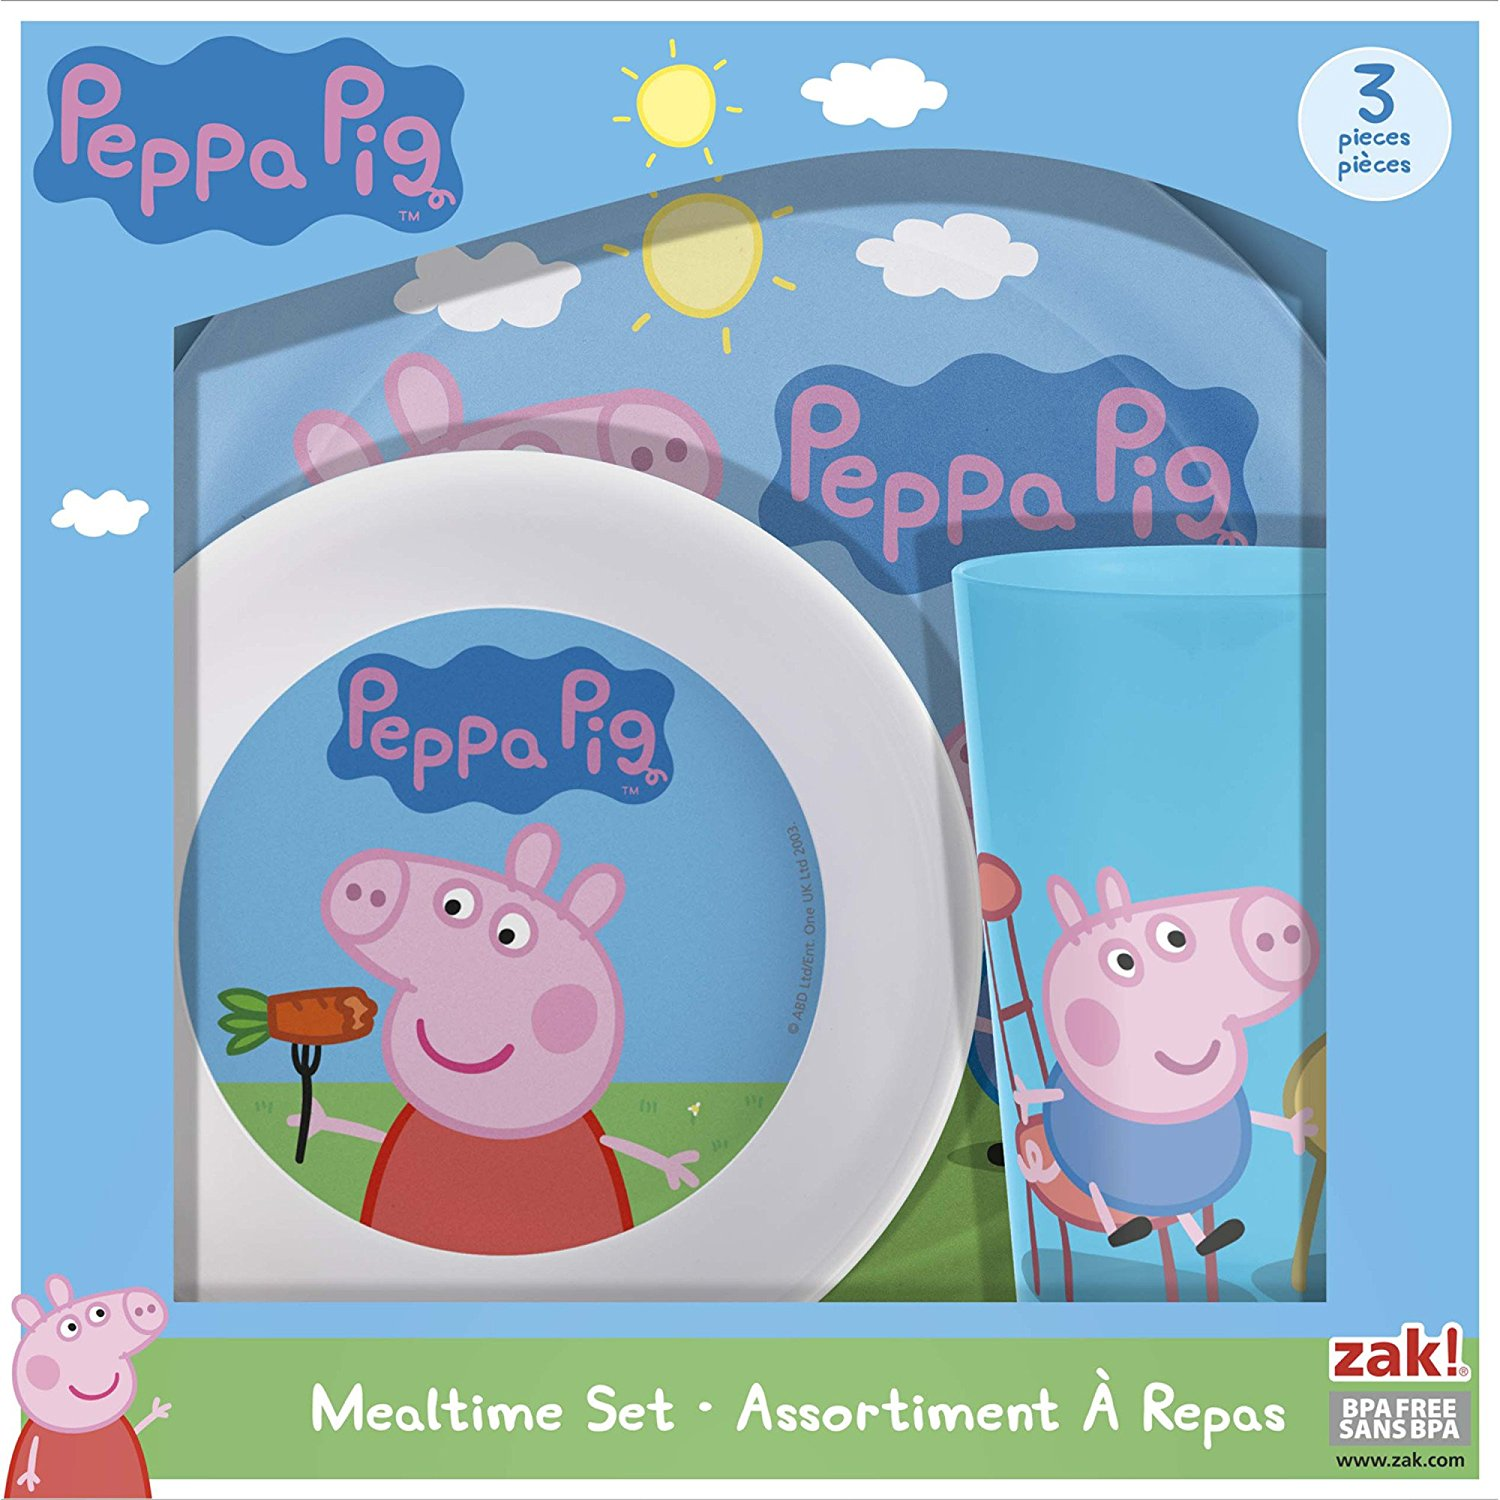 Peppa Pig Mealtime Set with Plate, Bowl and Tumbler, Break Resistant and  BPA-free Plastic, 3 piece set by Zak! Designs, Durable materials  , By Zak